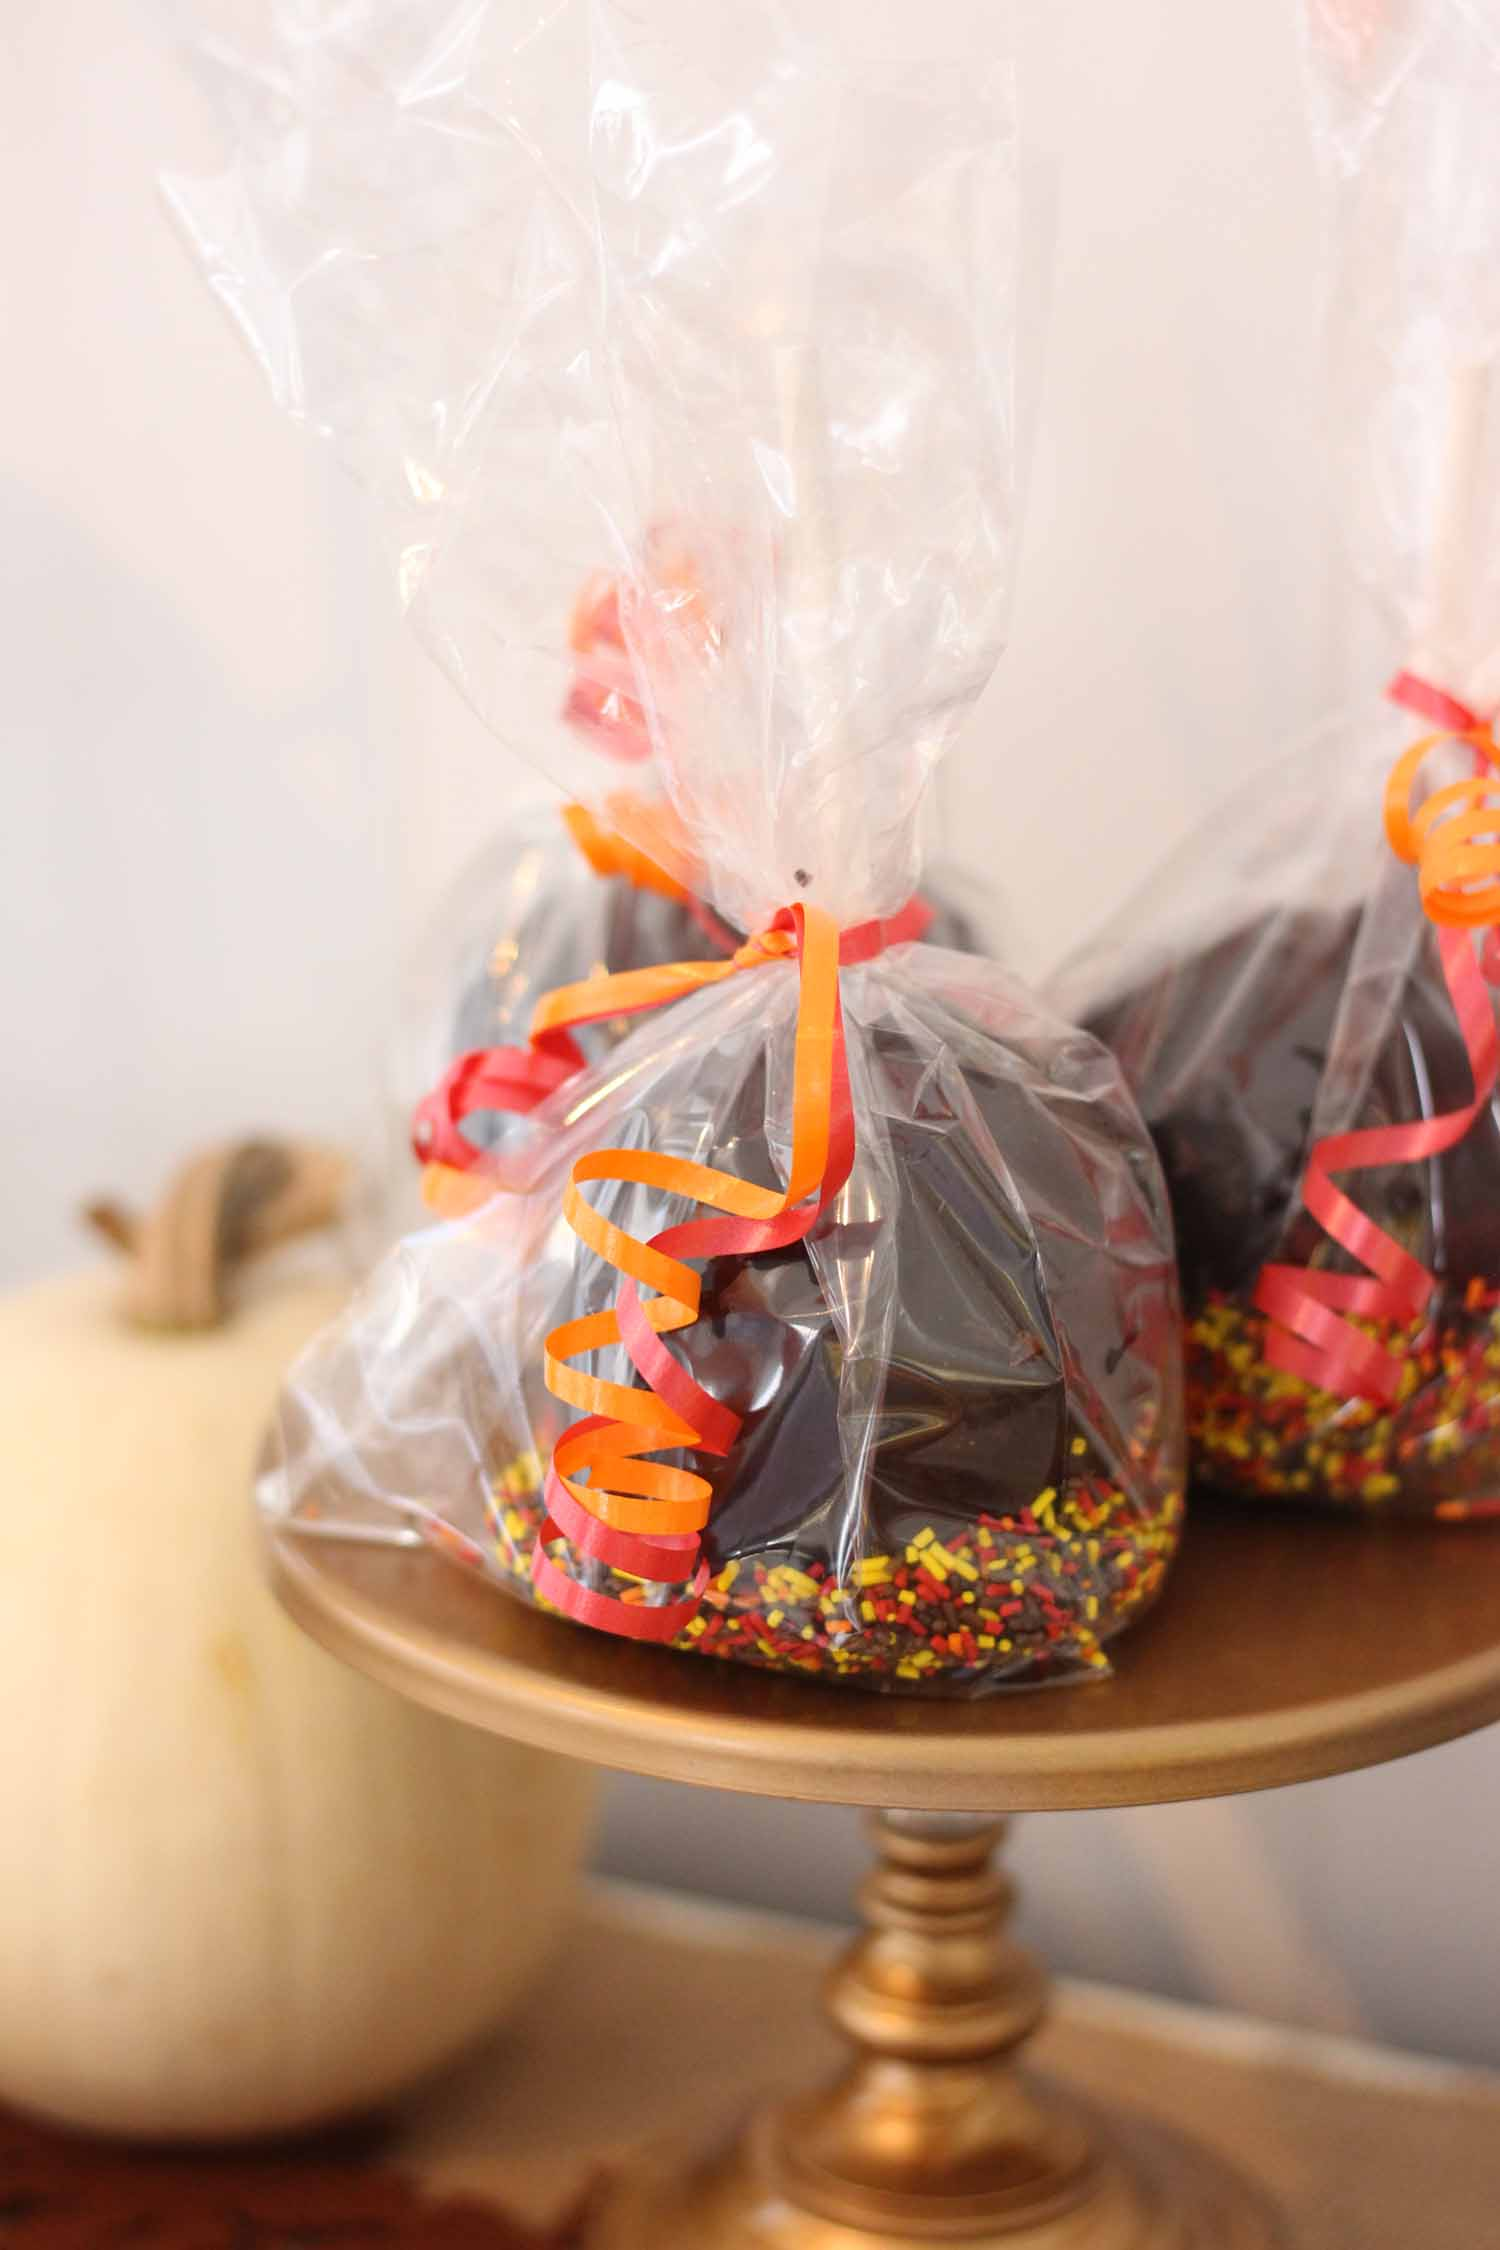 chocolate caramel apples from cafe pierrot in sparta nj